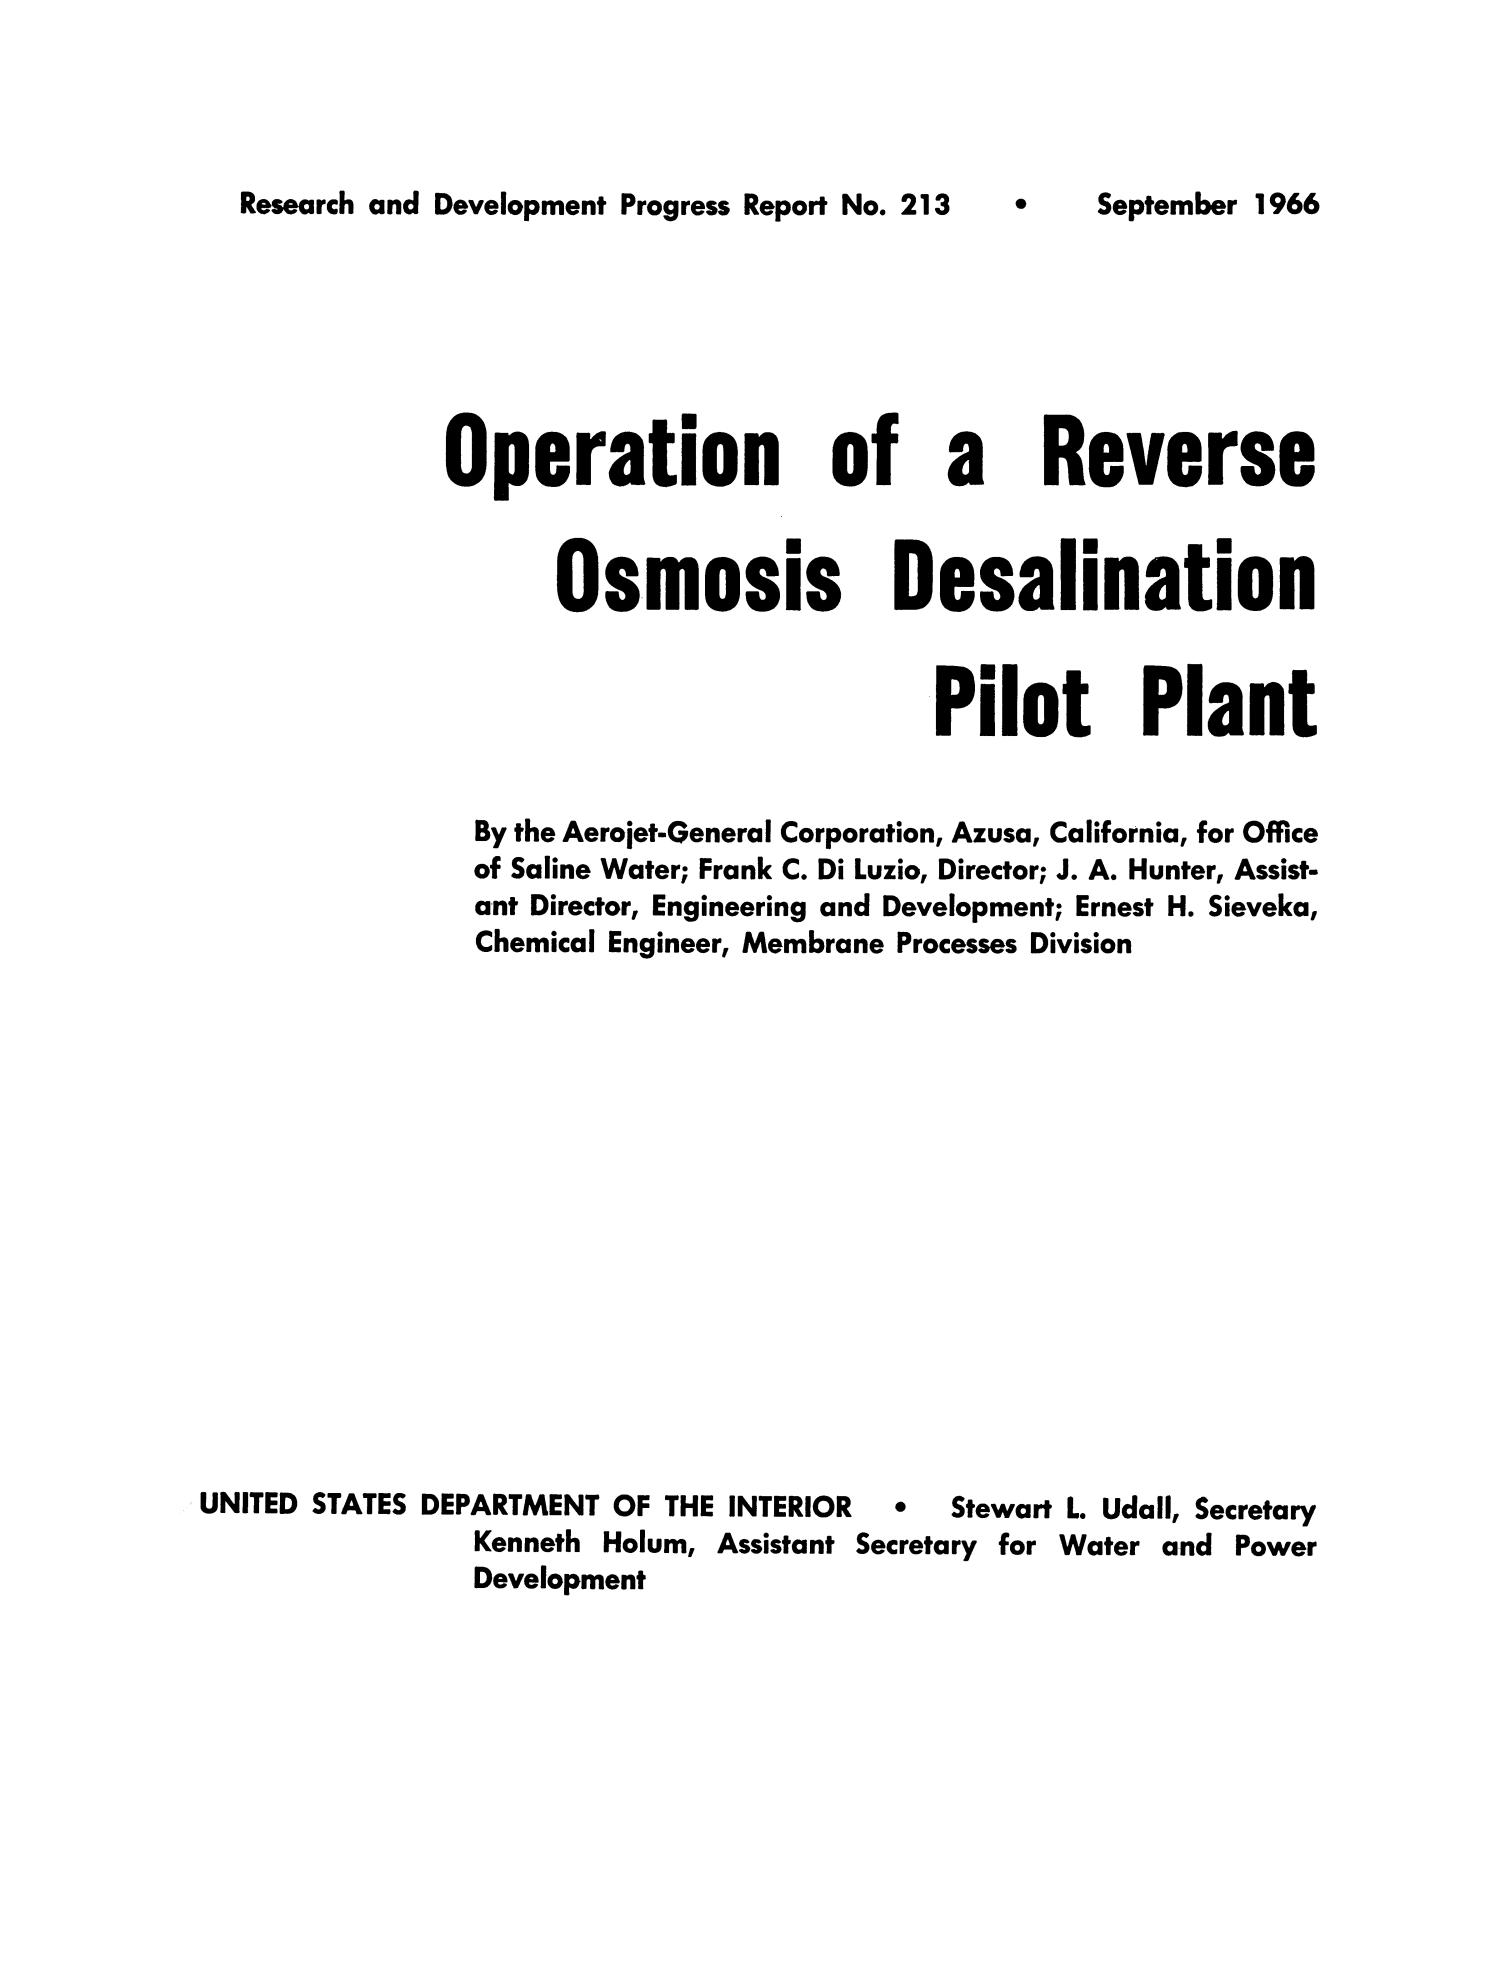 Operation of a reverse osmosis desalination pilot plant Page